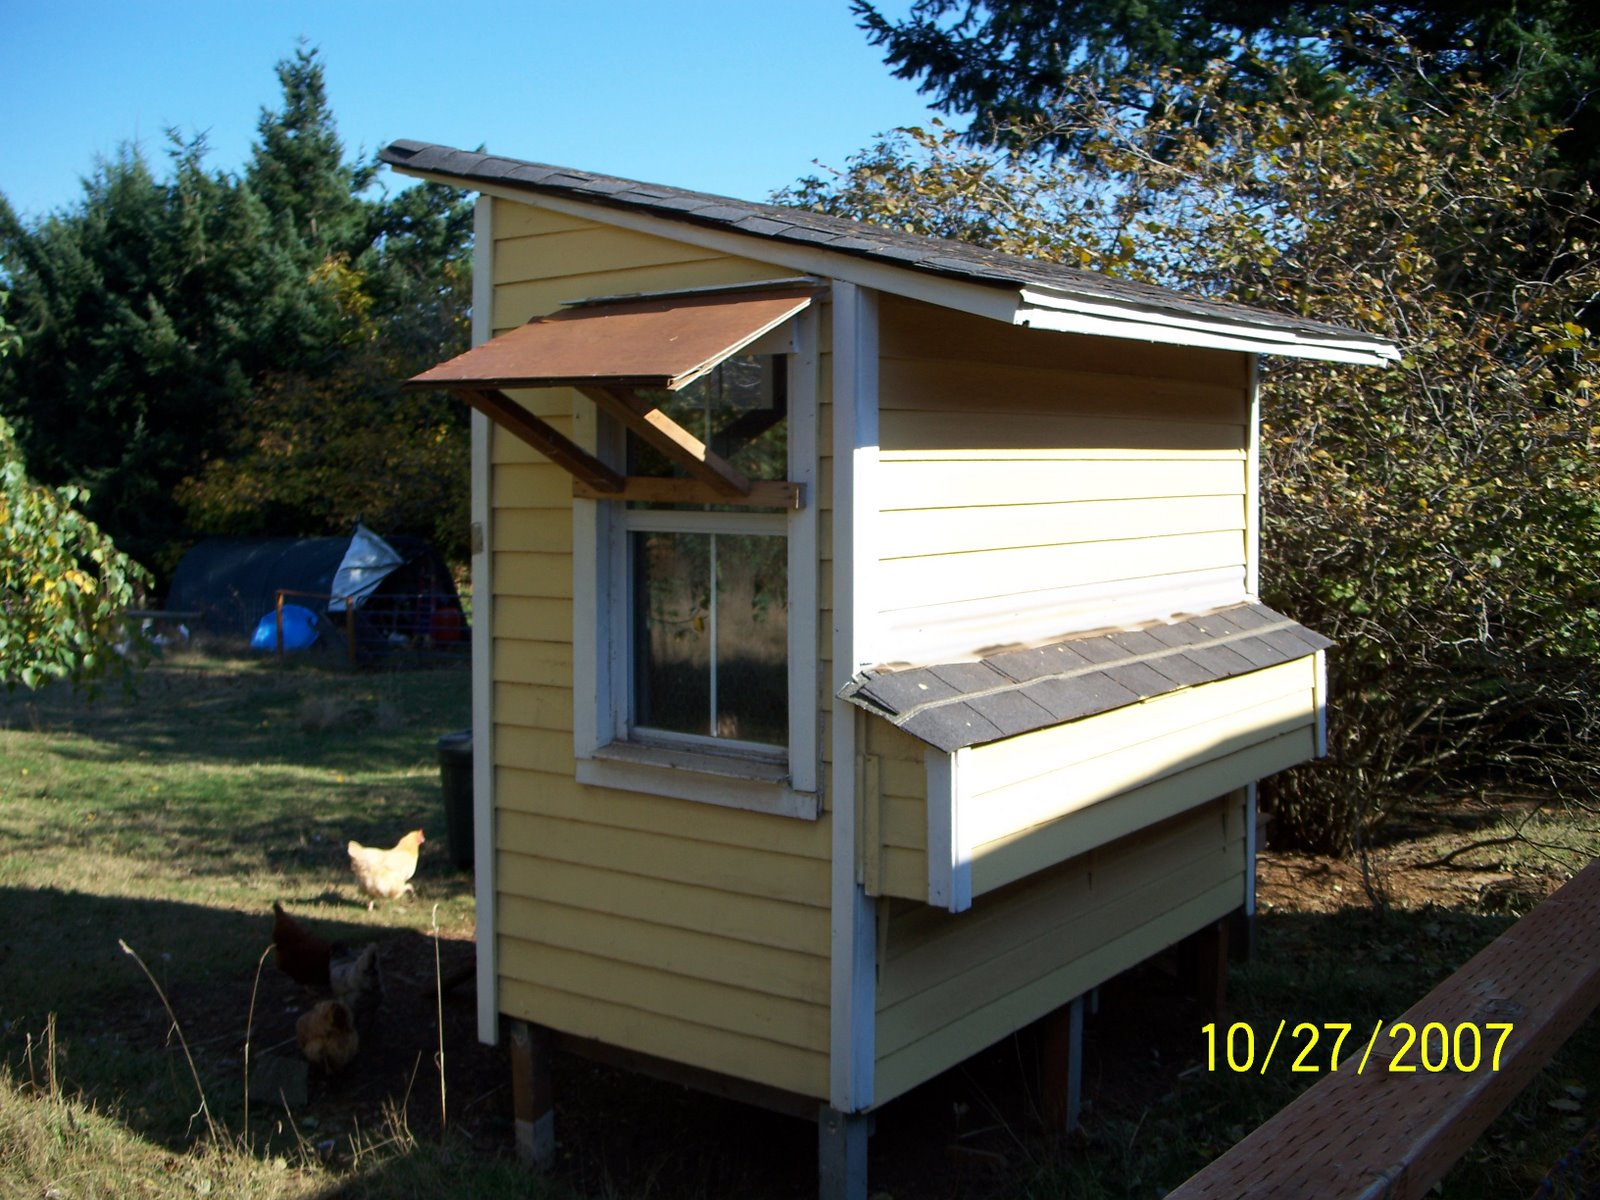 Home ideas chicken coops building plans Build a house online